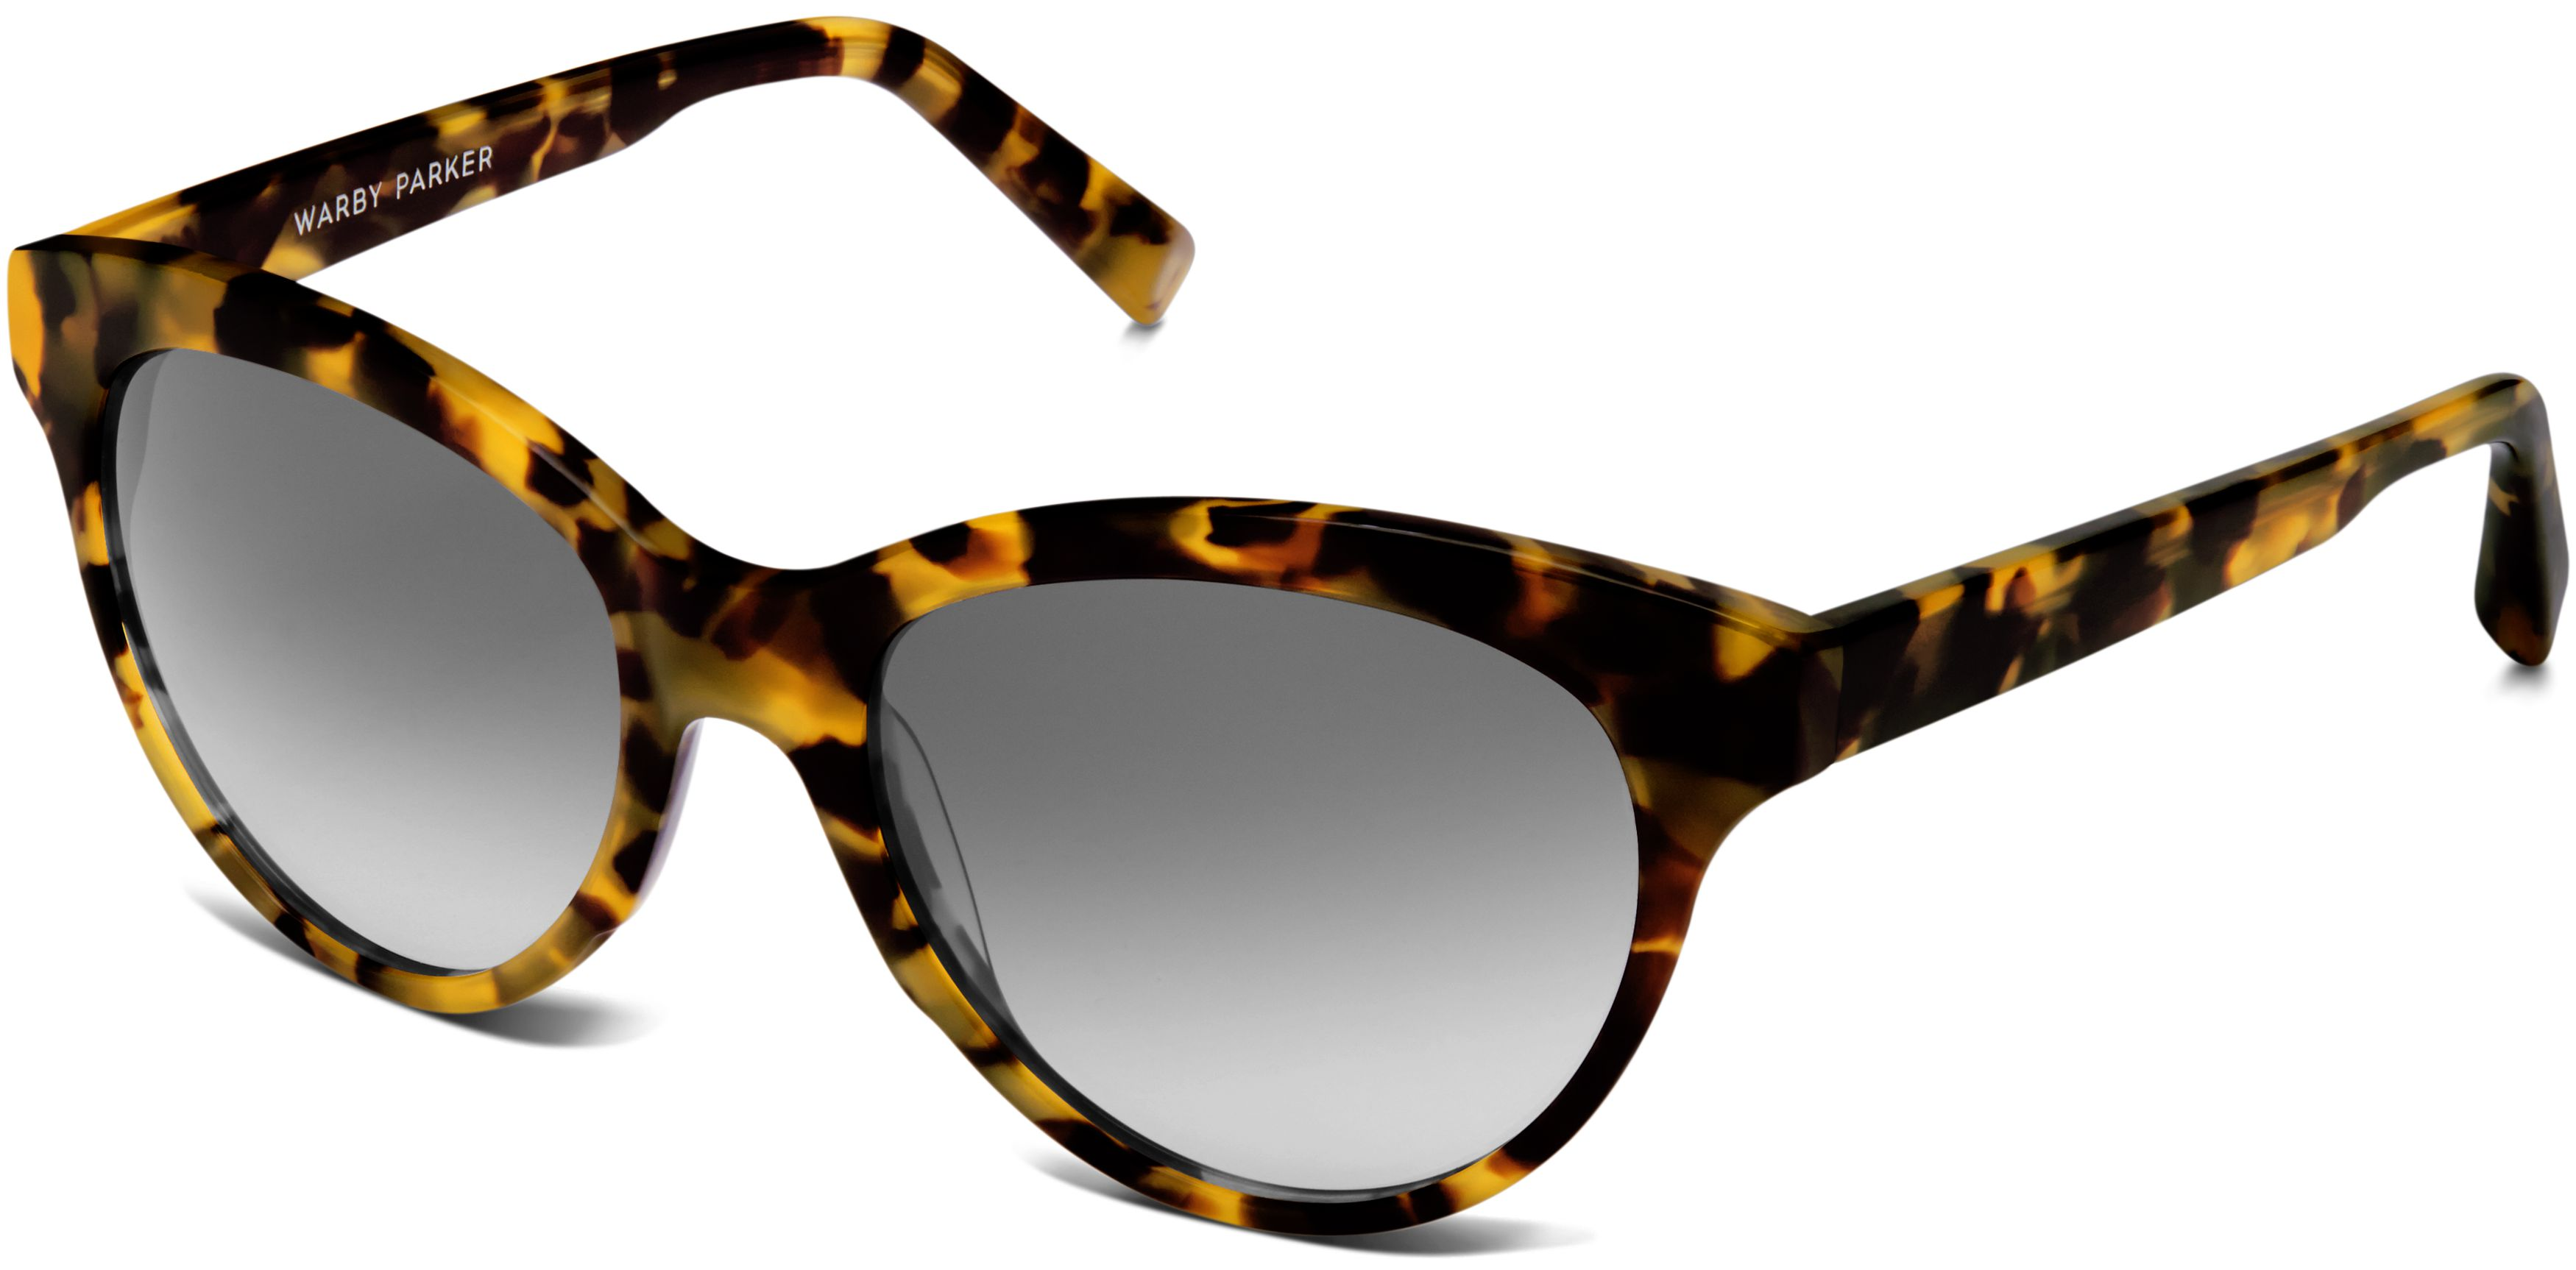 cec8b6d612 Piper Sunglasses in Woodland Tortoise with Grey Gradient lenses for Women